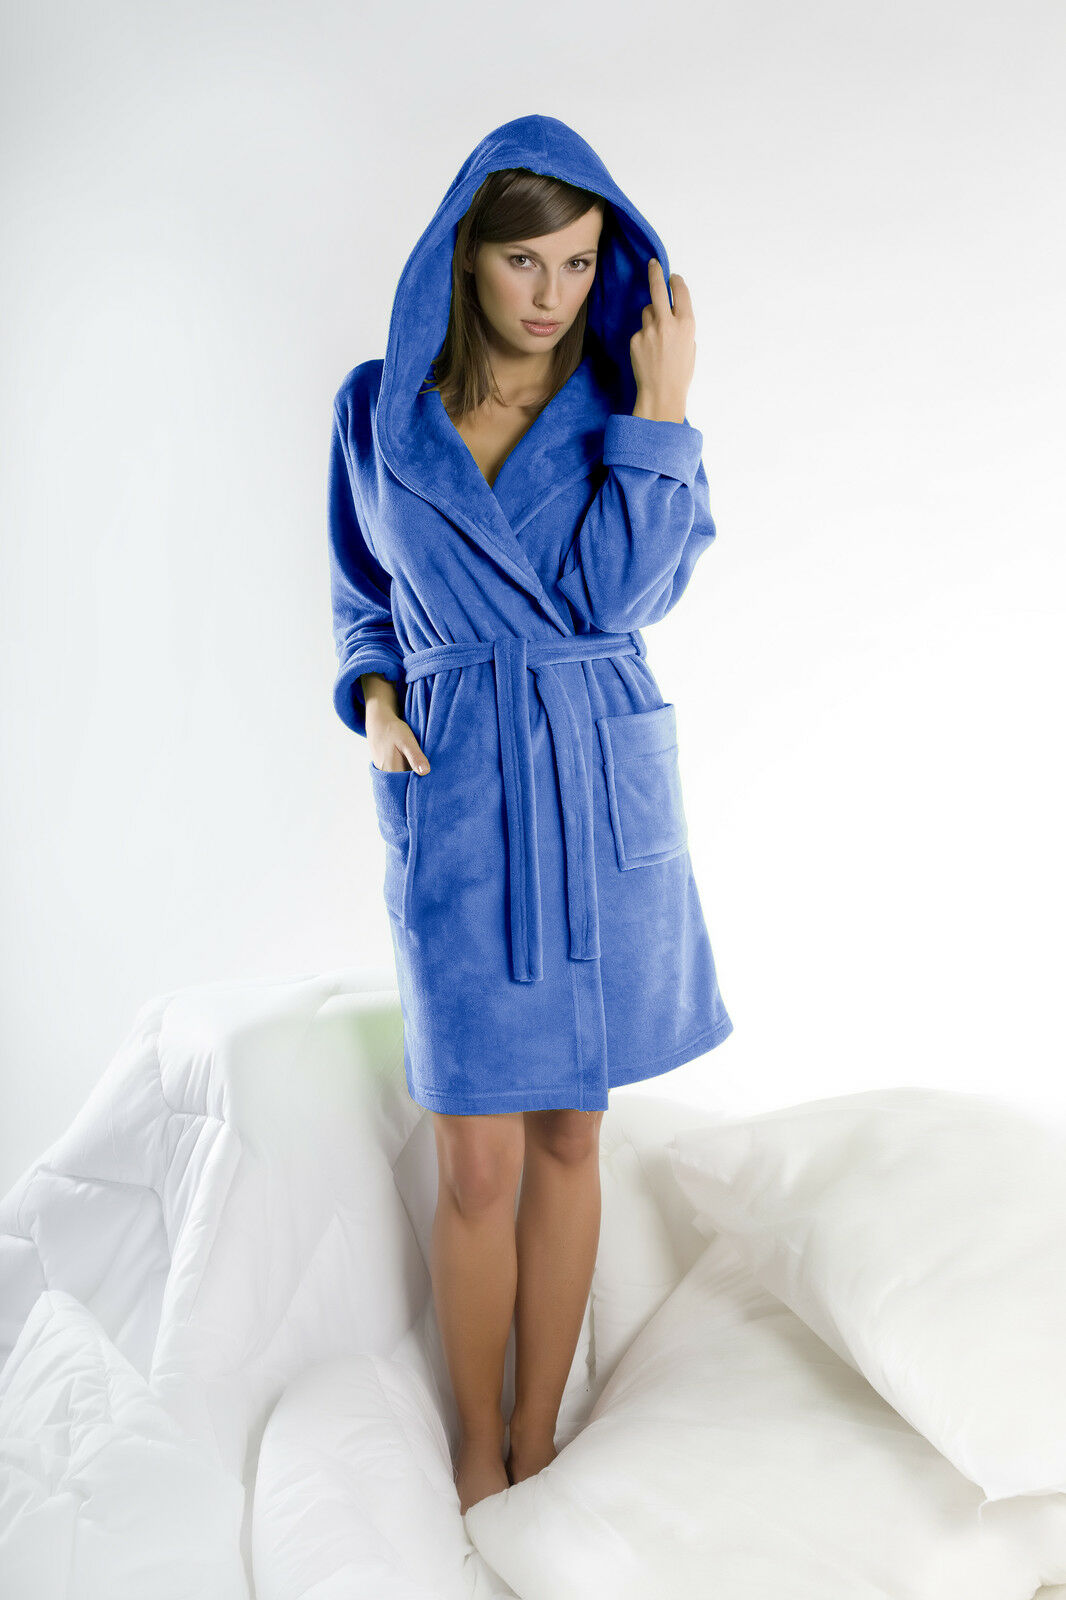 Women' Soft Luxury Bathrobe Dressing Gown Housecoat With Belt And Hood